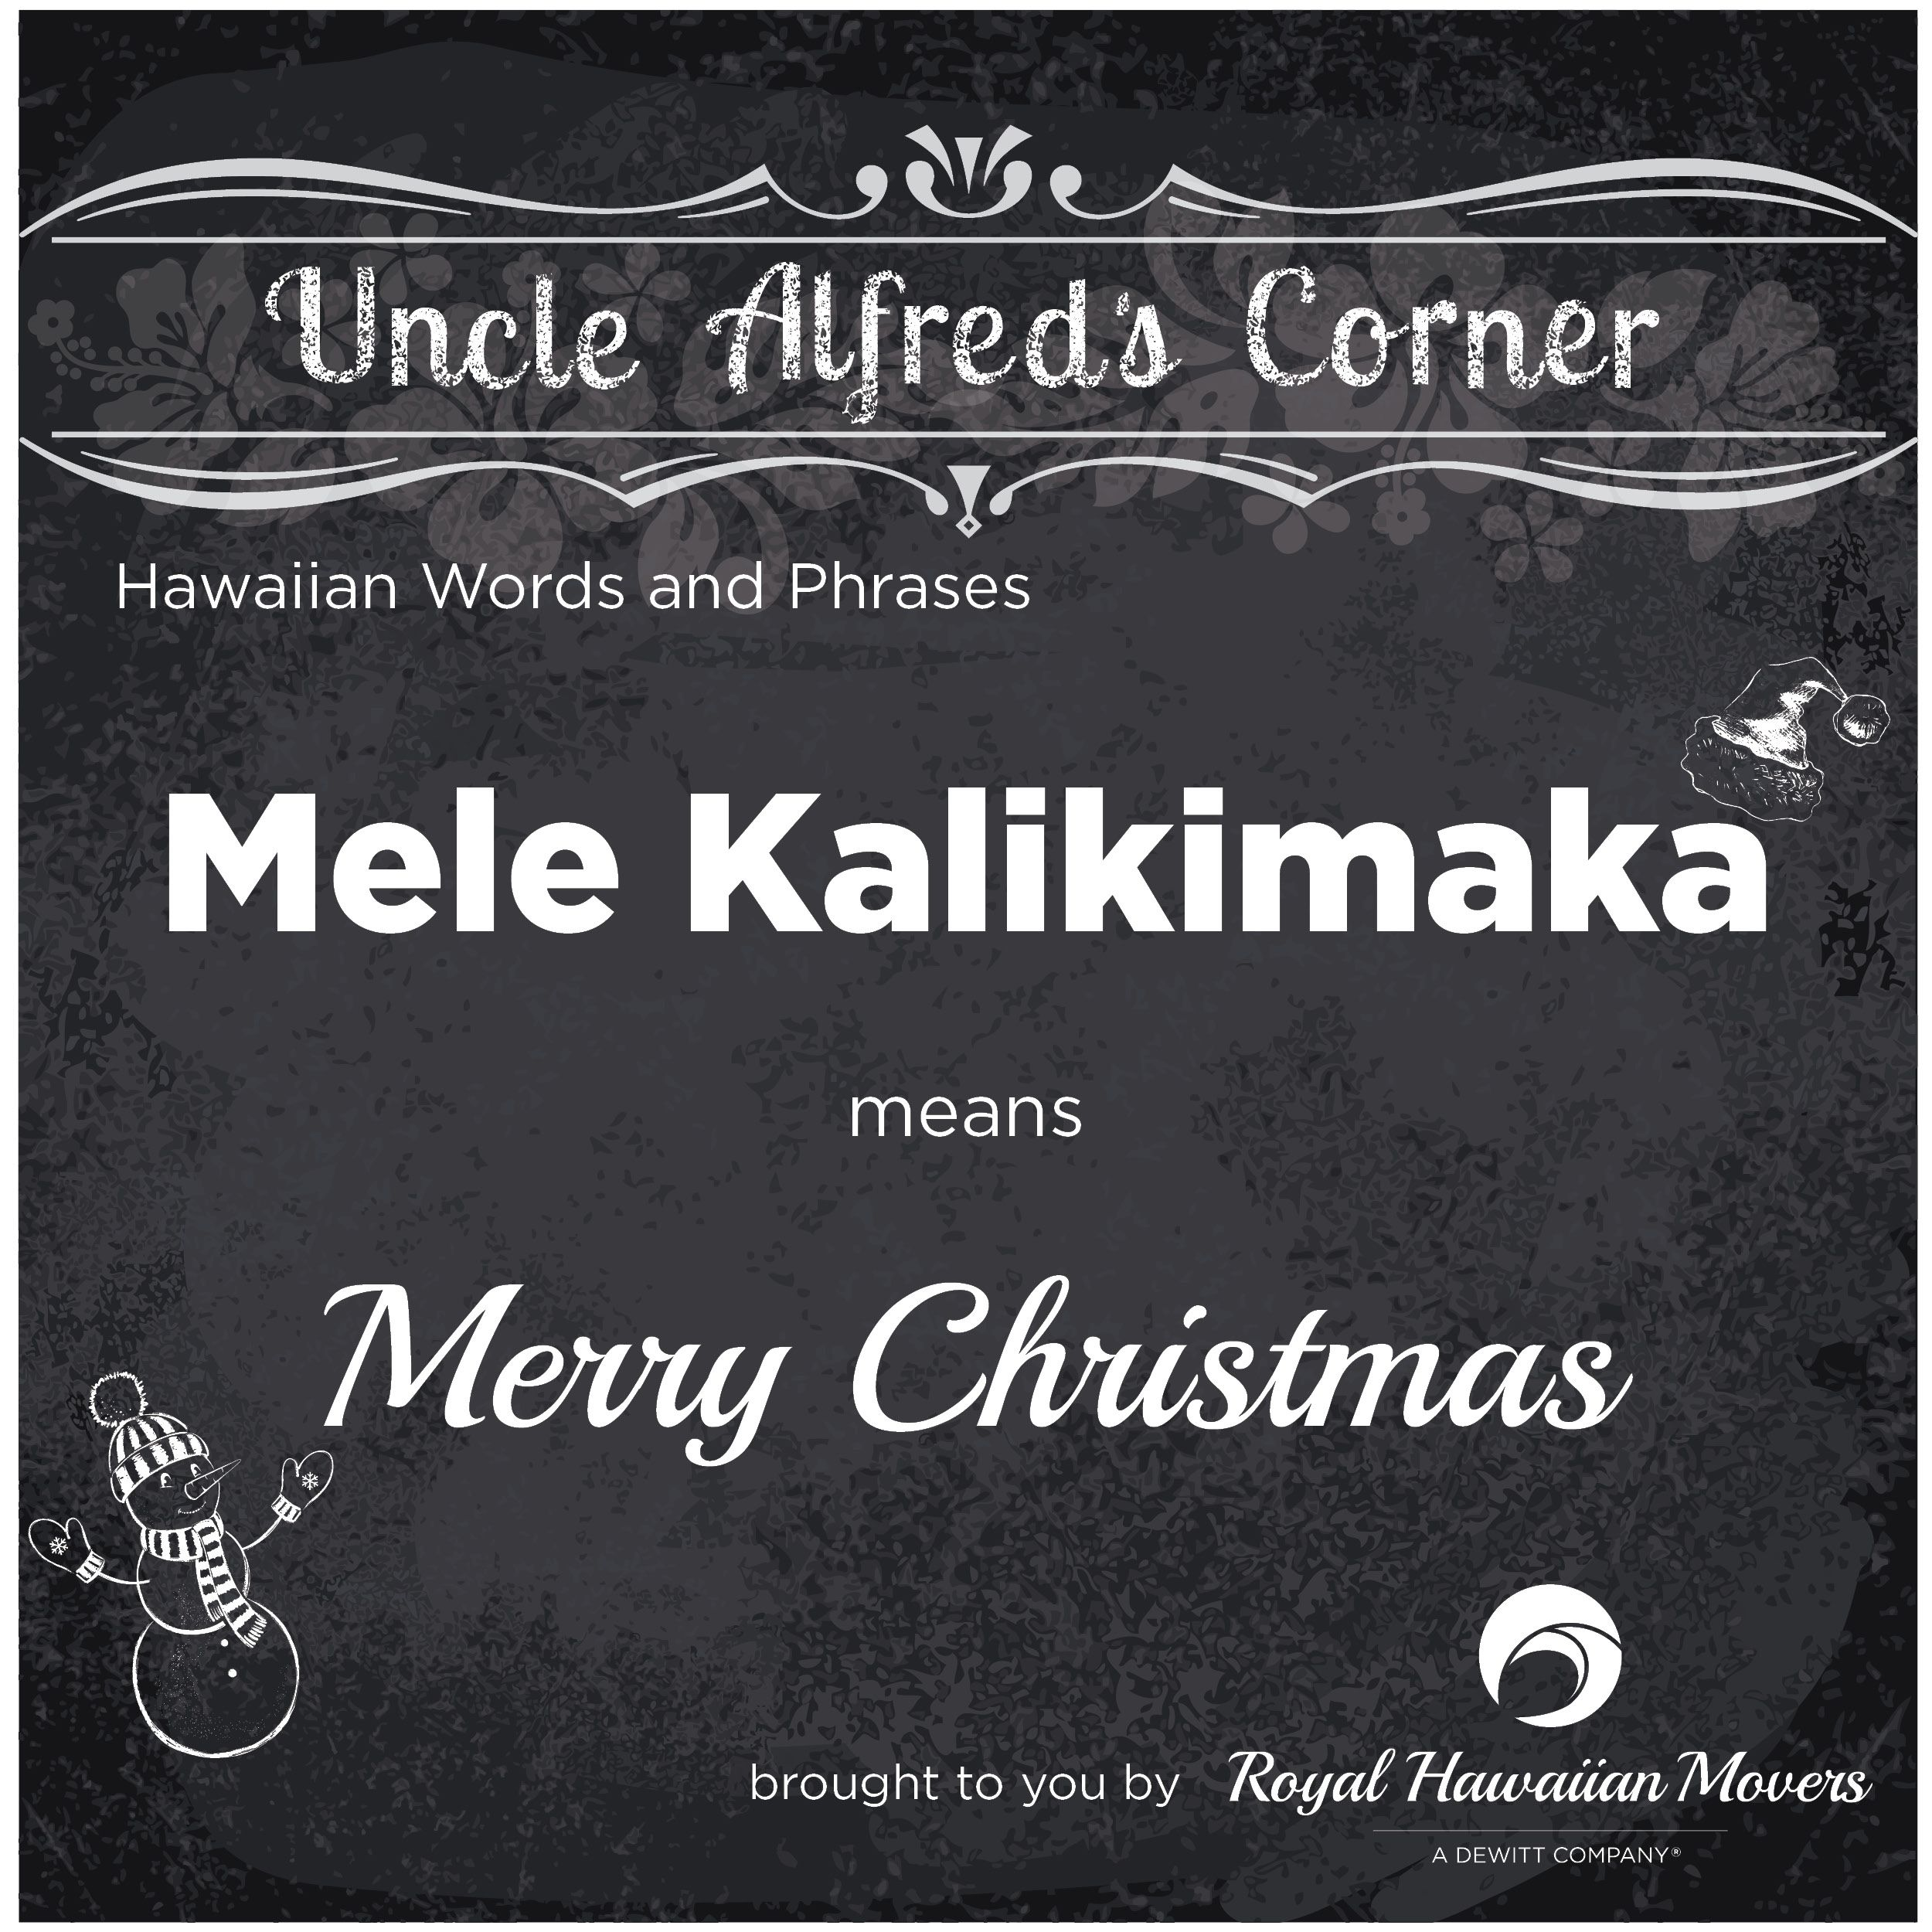 Uncle alfreds corner holiday greetings uncle alfreds corner a growing list of commonly used hawaiian phrases that will come in handy whether your moving to hawaii or just visiting inspired by our won uncle alfred m4hsunfo